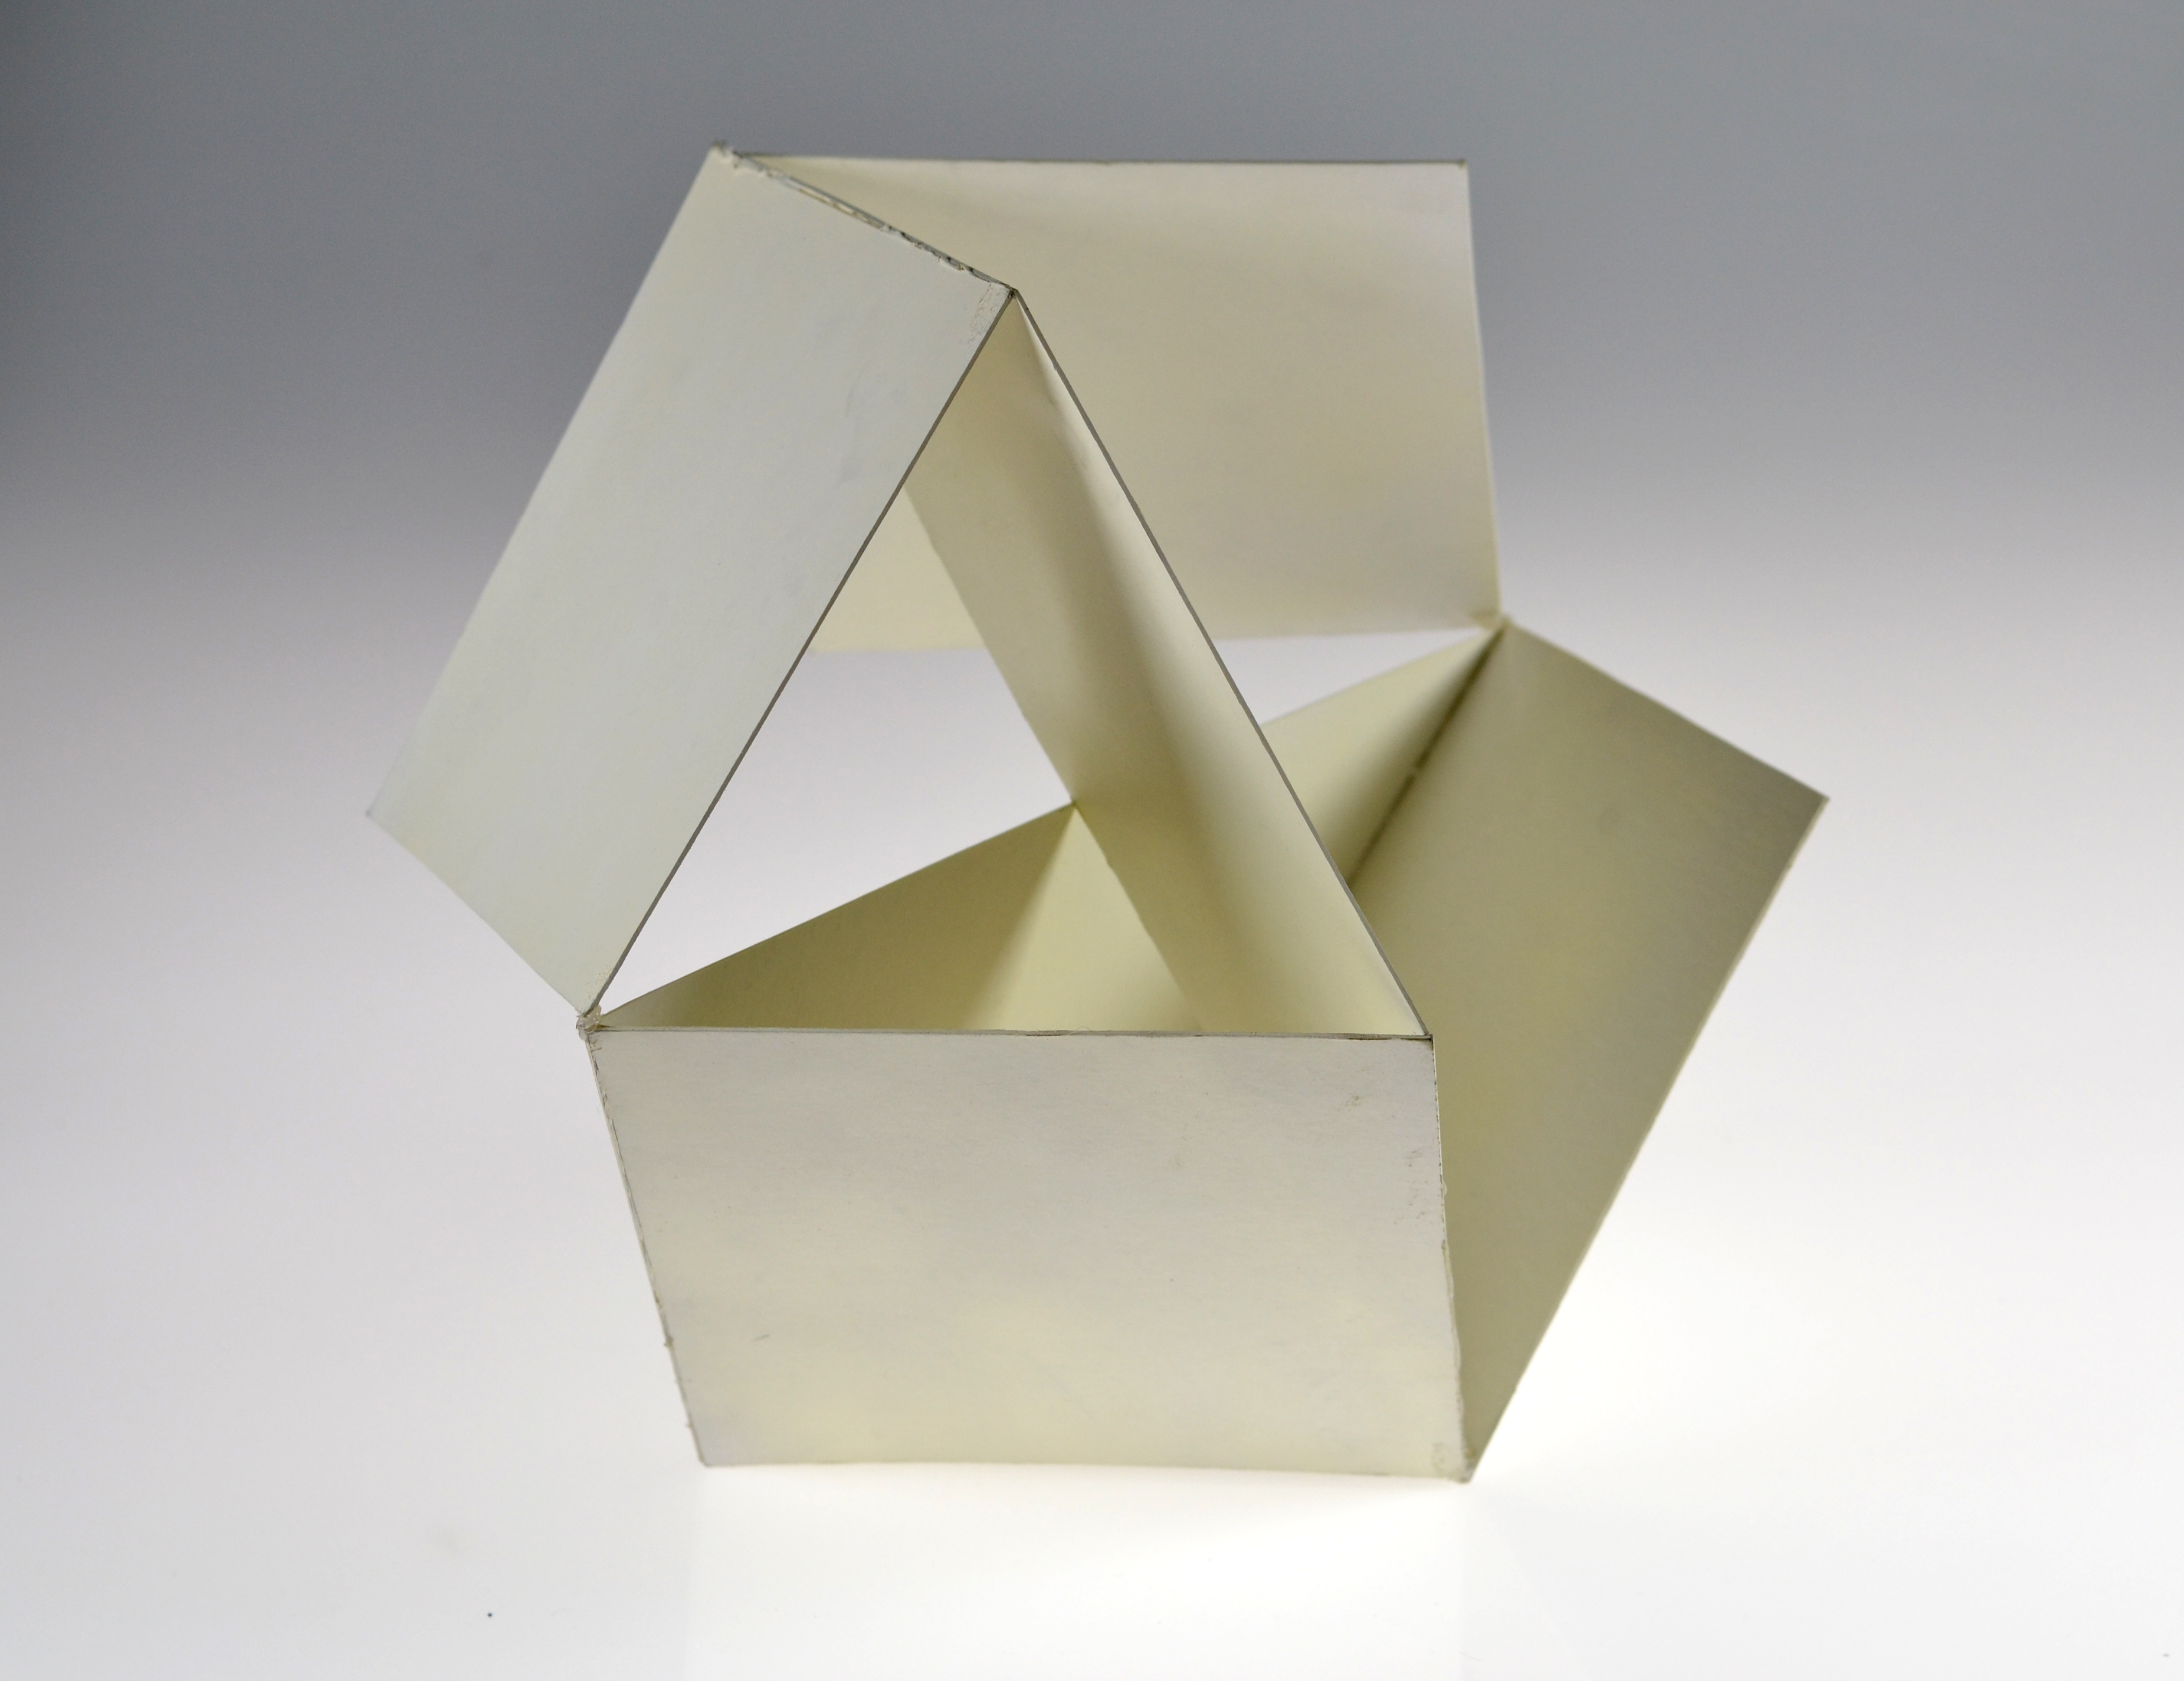 intersecting planes sculpture. i combined my interests in geometric form and intersecting planes created the purest representation of a cuboctahedron. sculpture